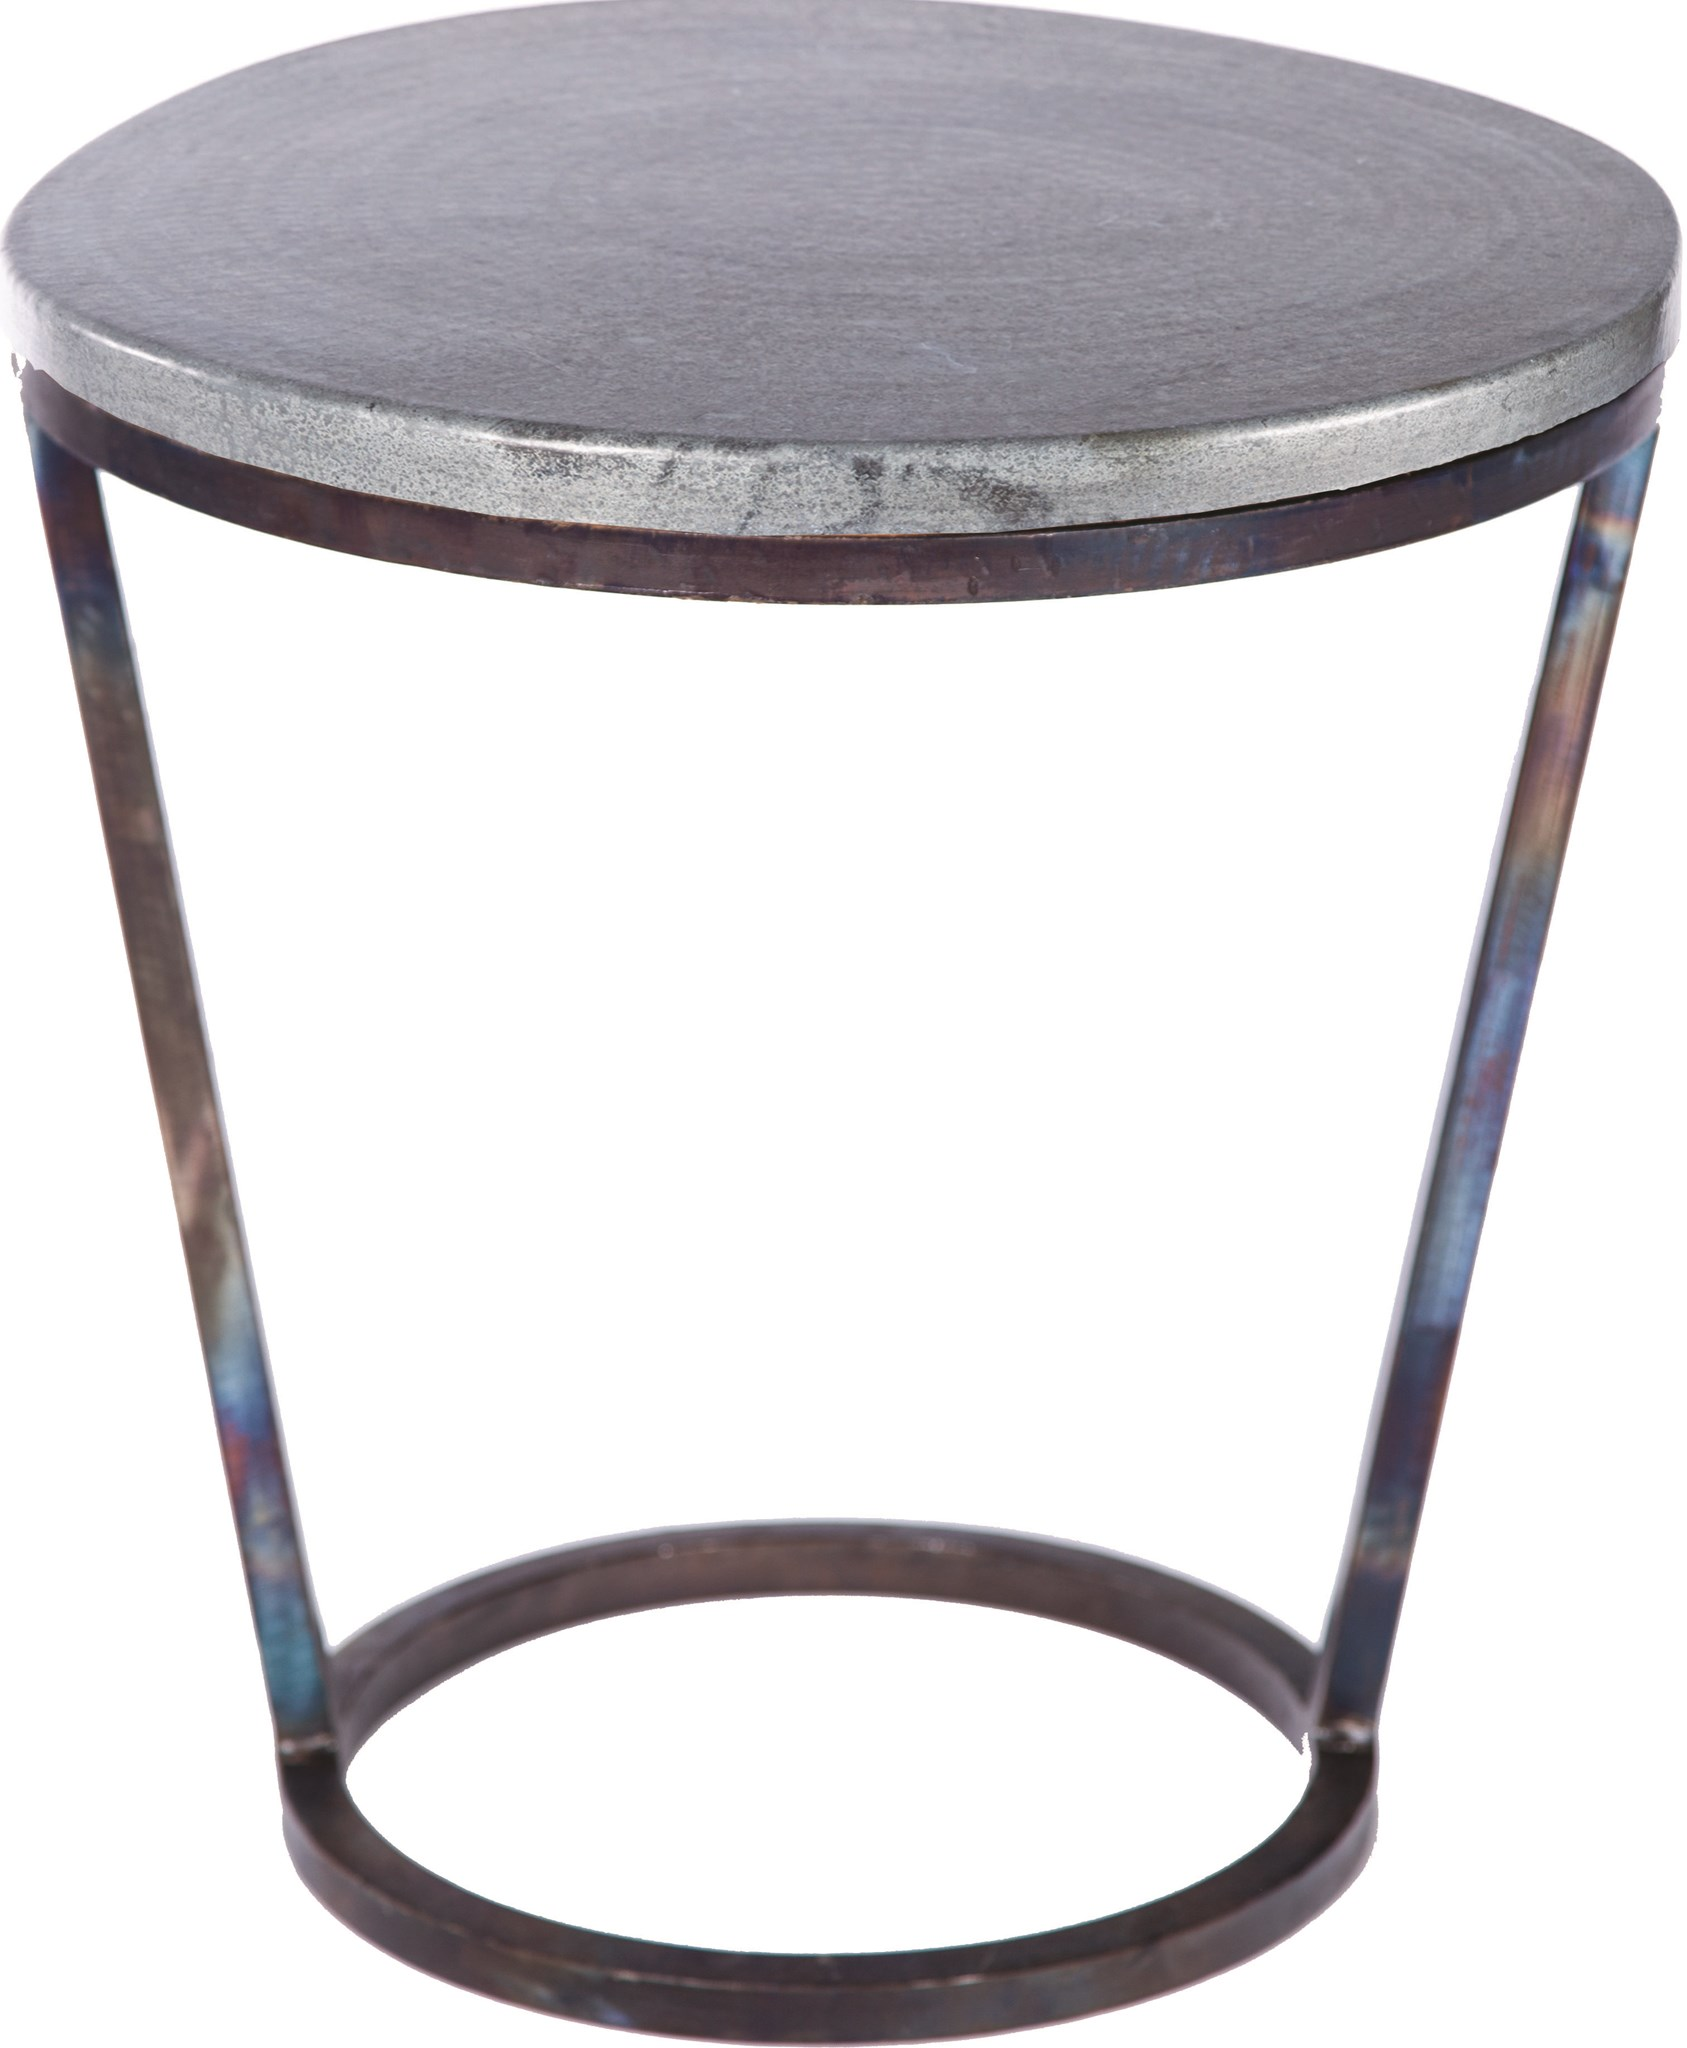 accent table with hammered zinc top boulevard urban living tablecloth for round teal accessories threshold coffee outdoor kitchen slimline console ikea wooden storage box lid